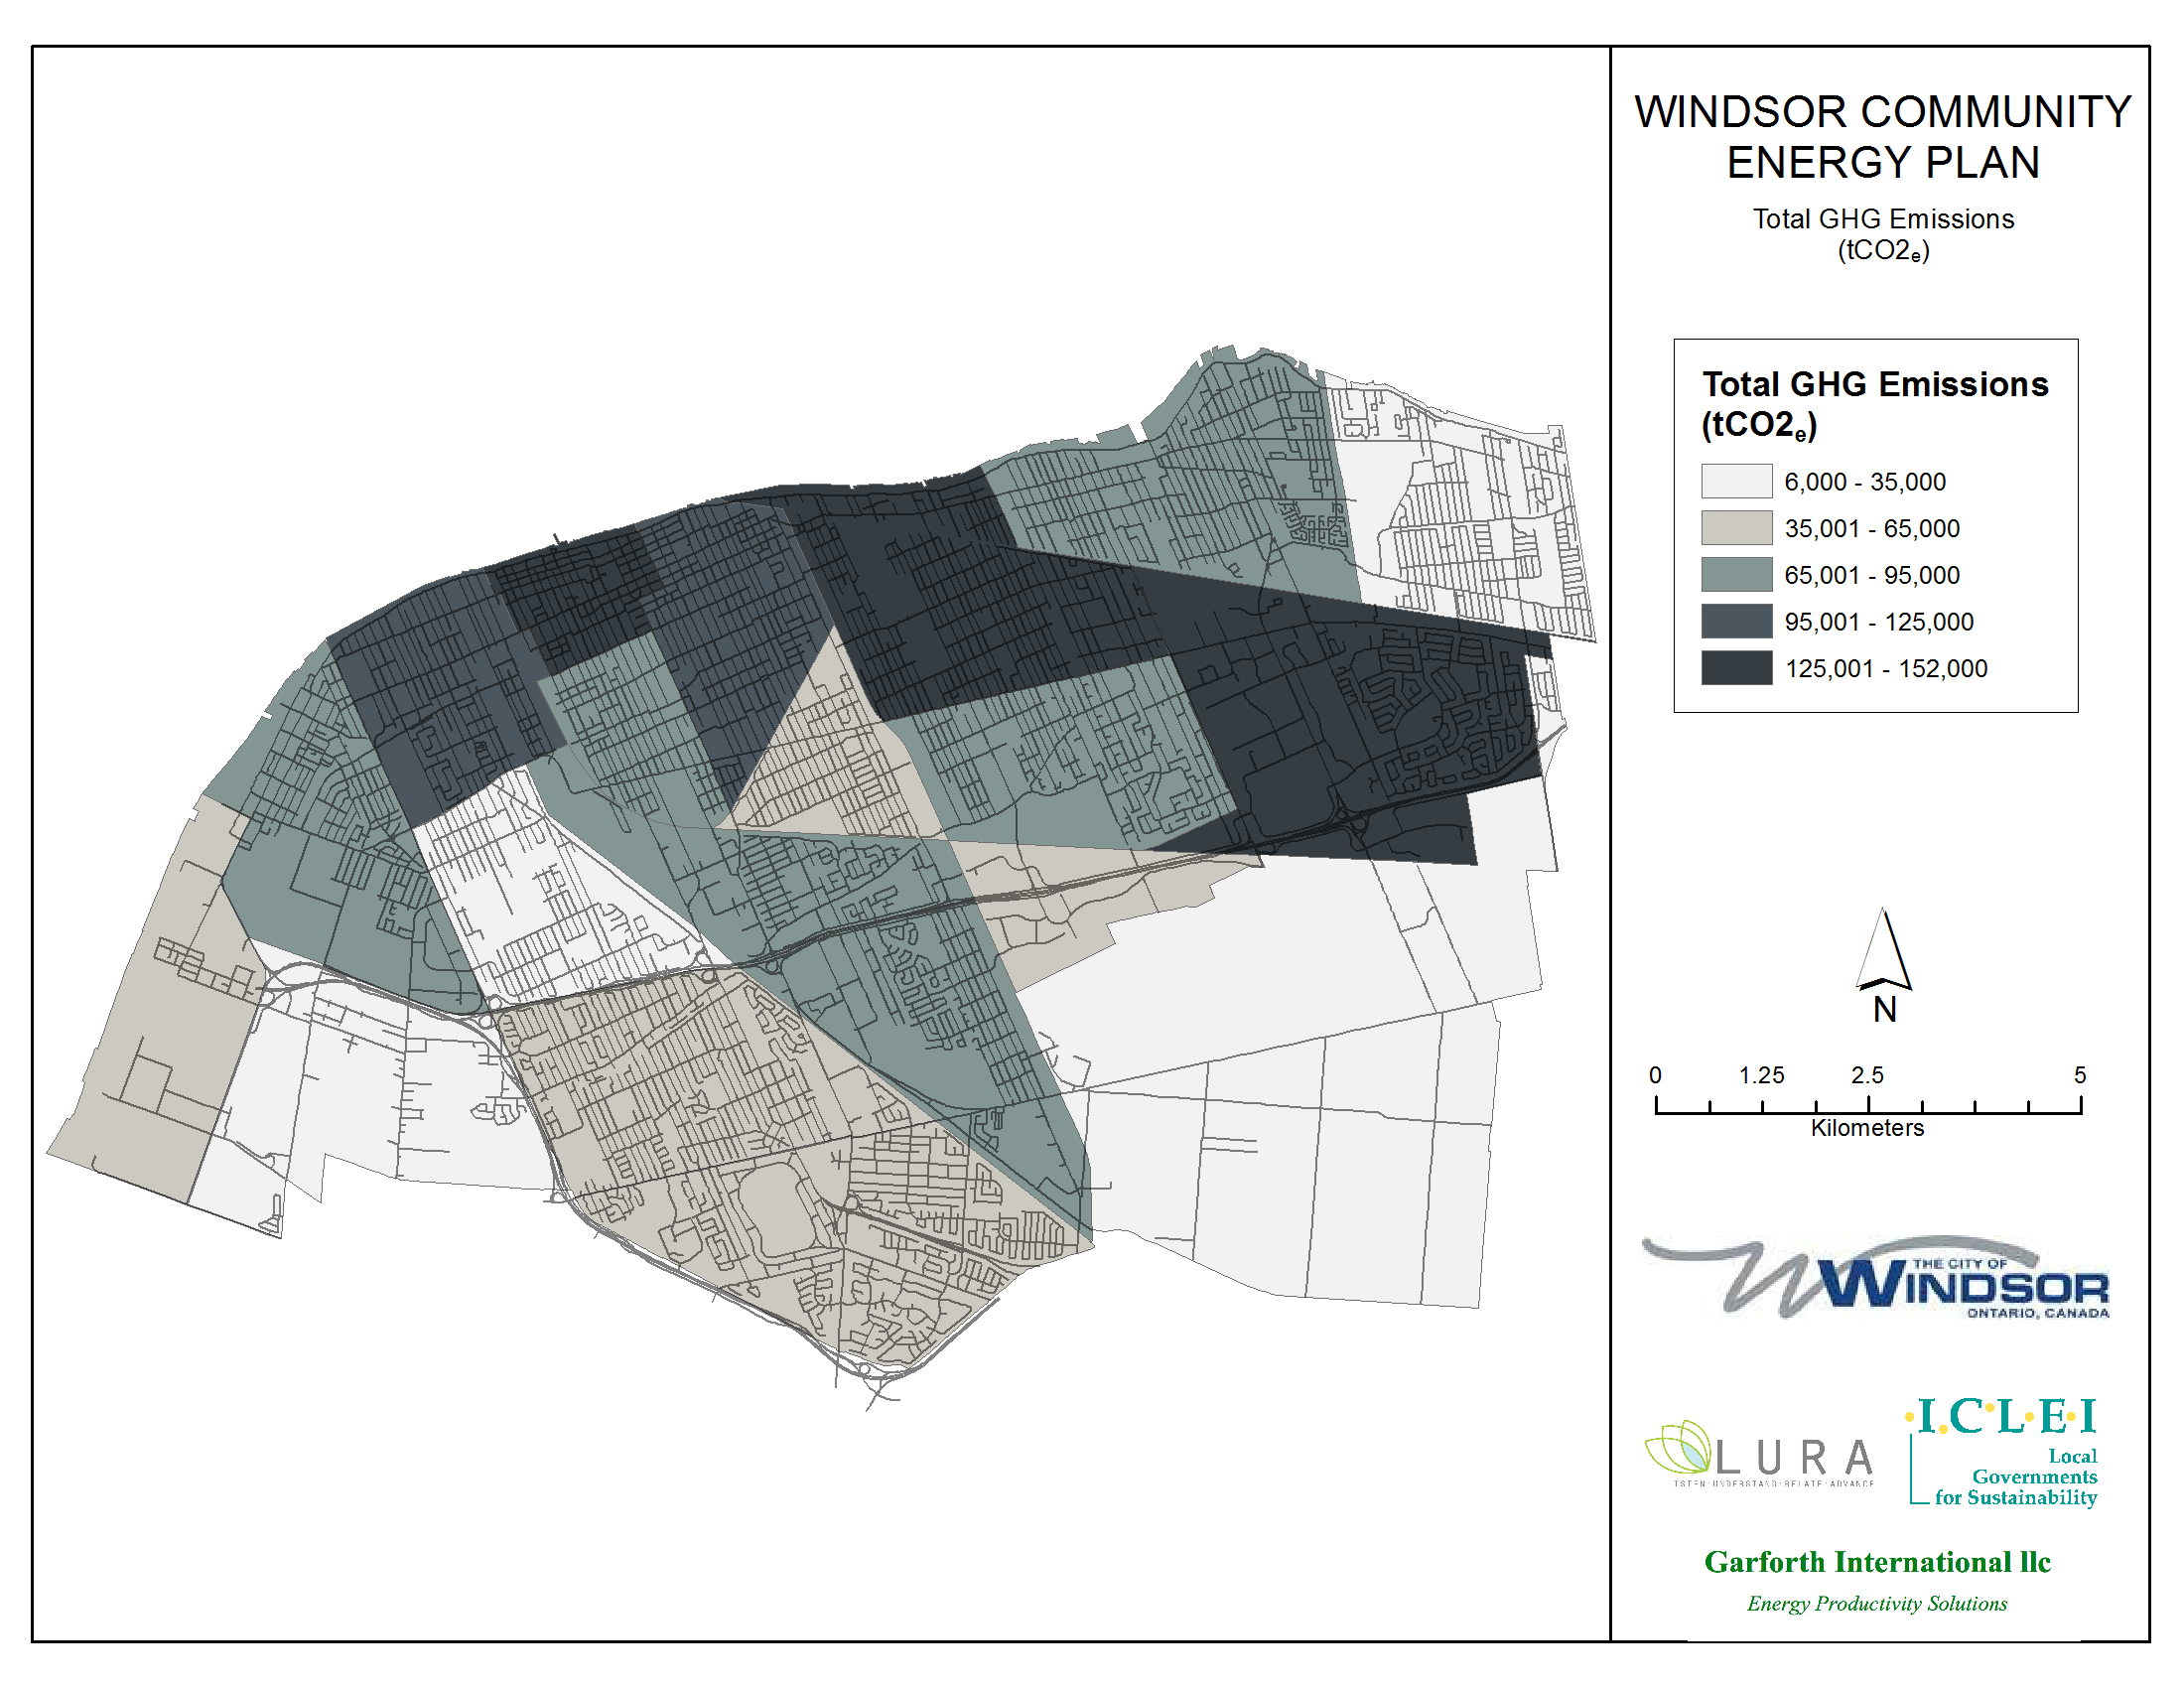 Thumbnail map of total greenhouse gas emissions within the City of Windsor